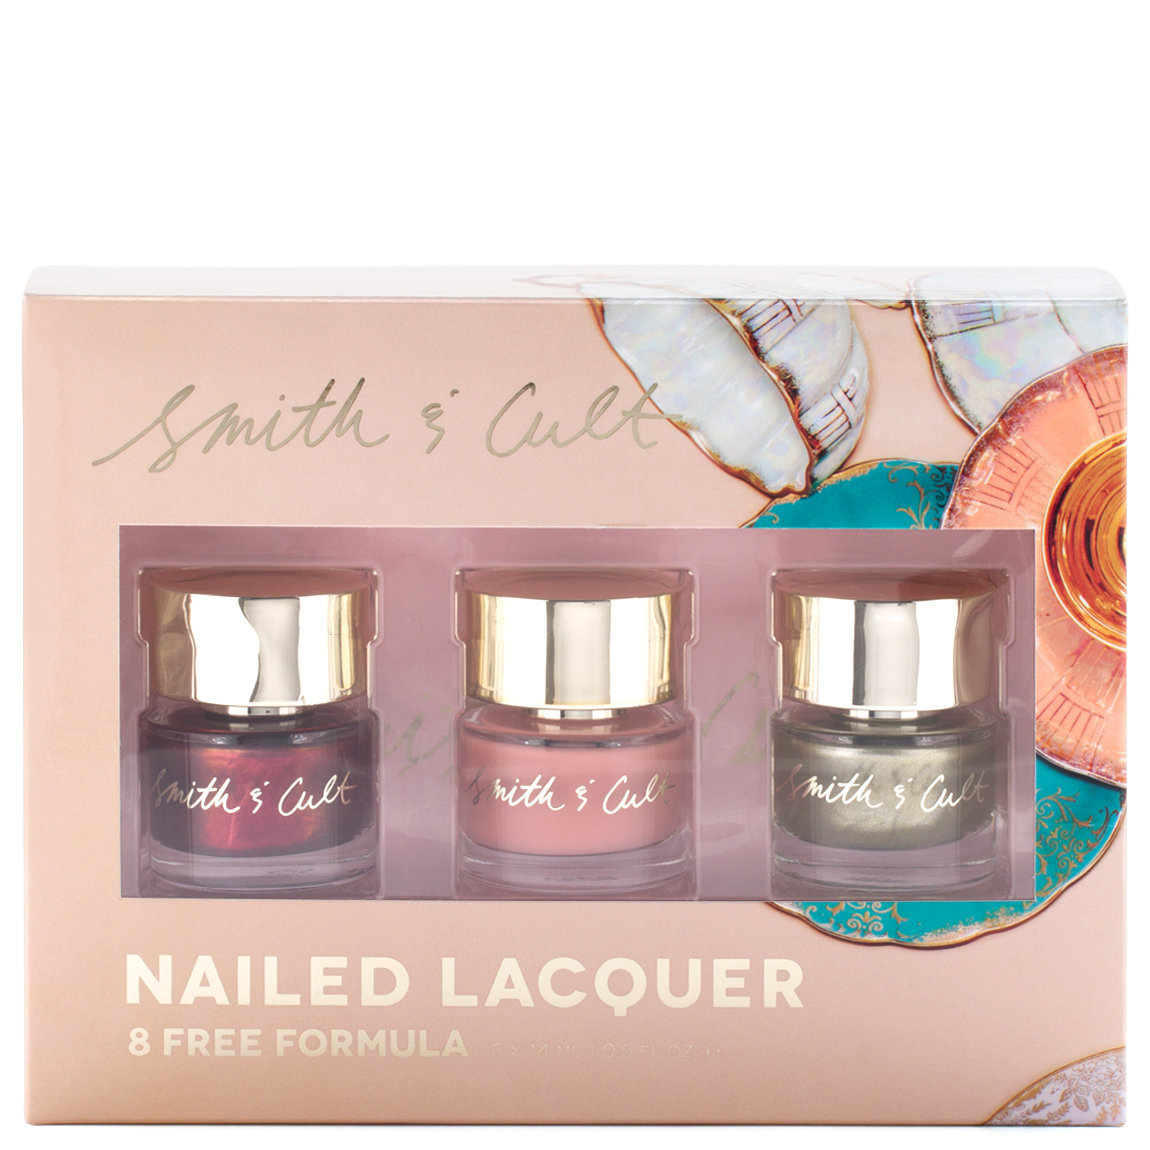 Smith & Cult Nailed Lacquer Trio Set 2